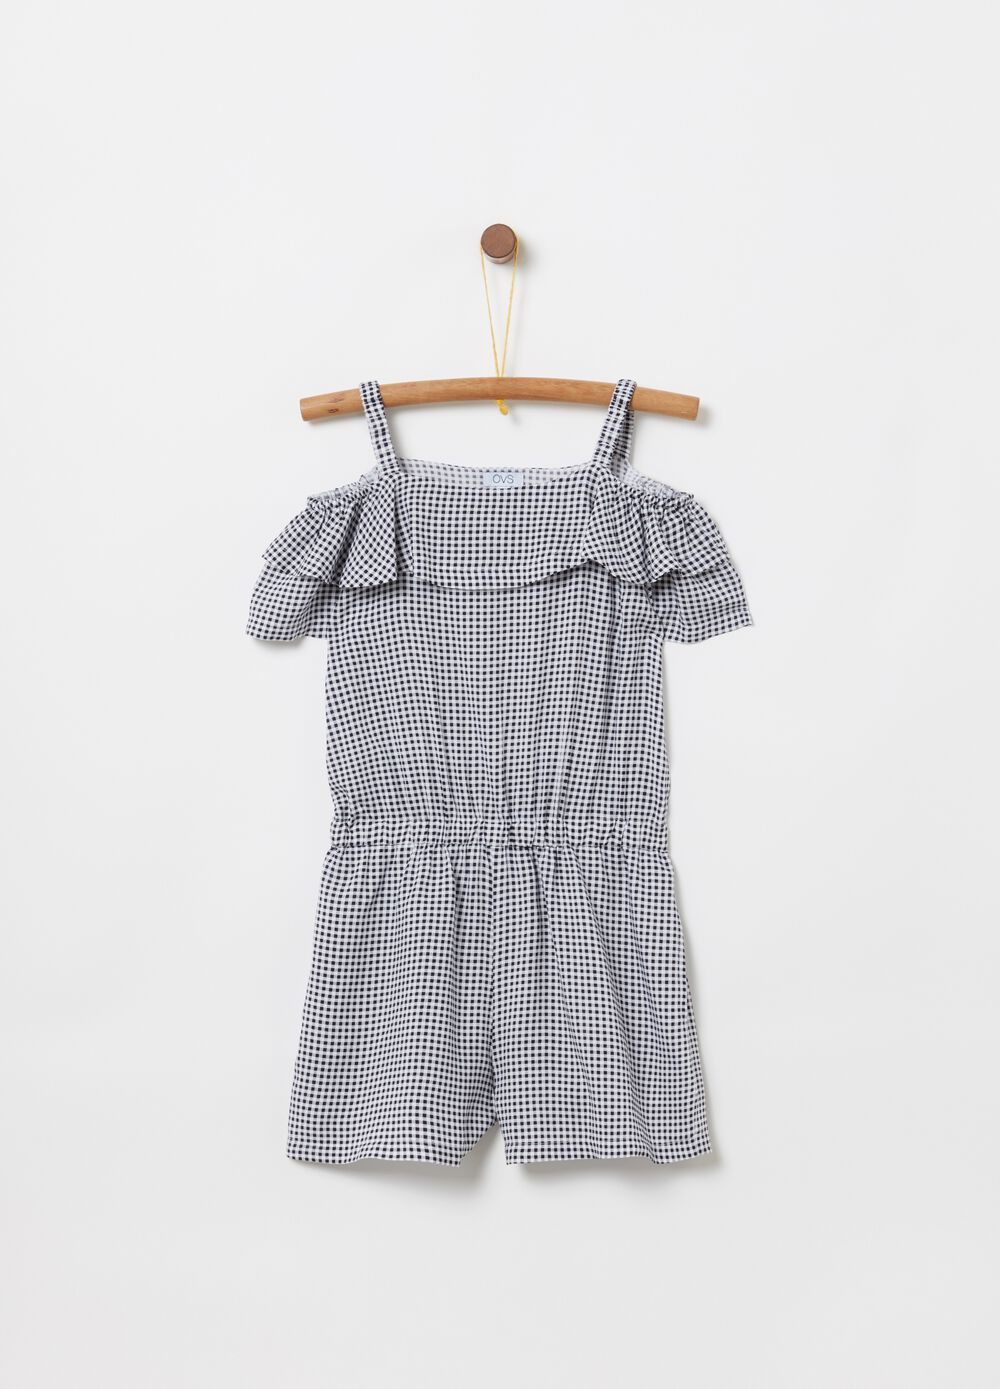 Sleeveless onesie in viscose with ruffles